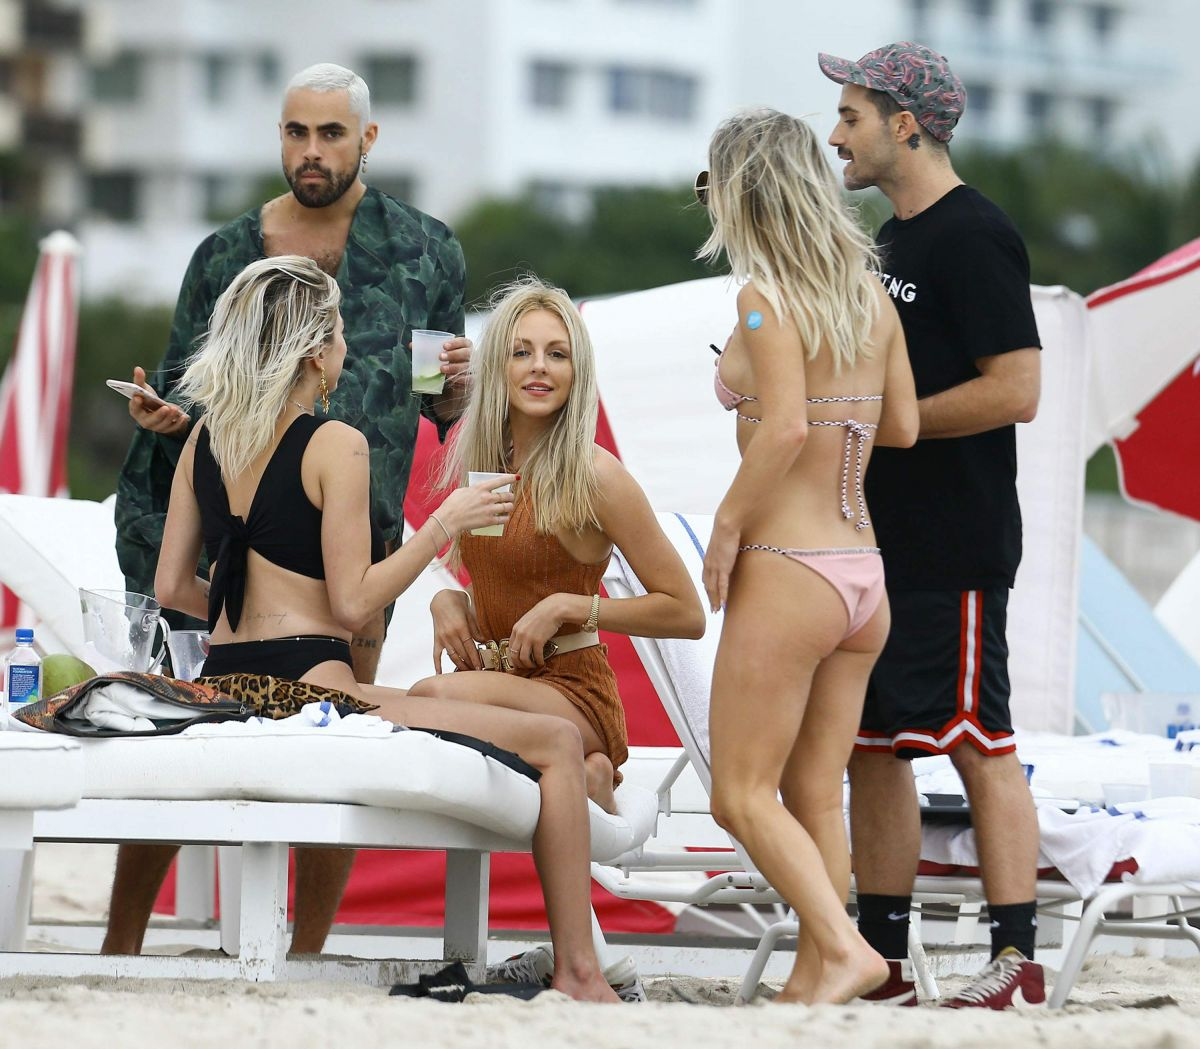 CAROLINE VREELAND, SHEA MARIE and JESS MAIR in Bikinis on the Beach in Miami 12/02/2016